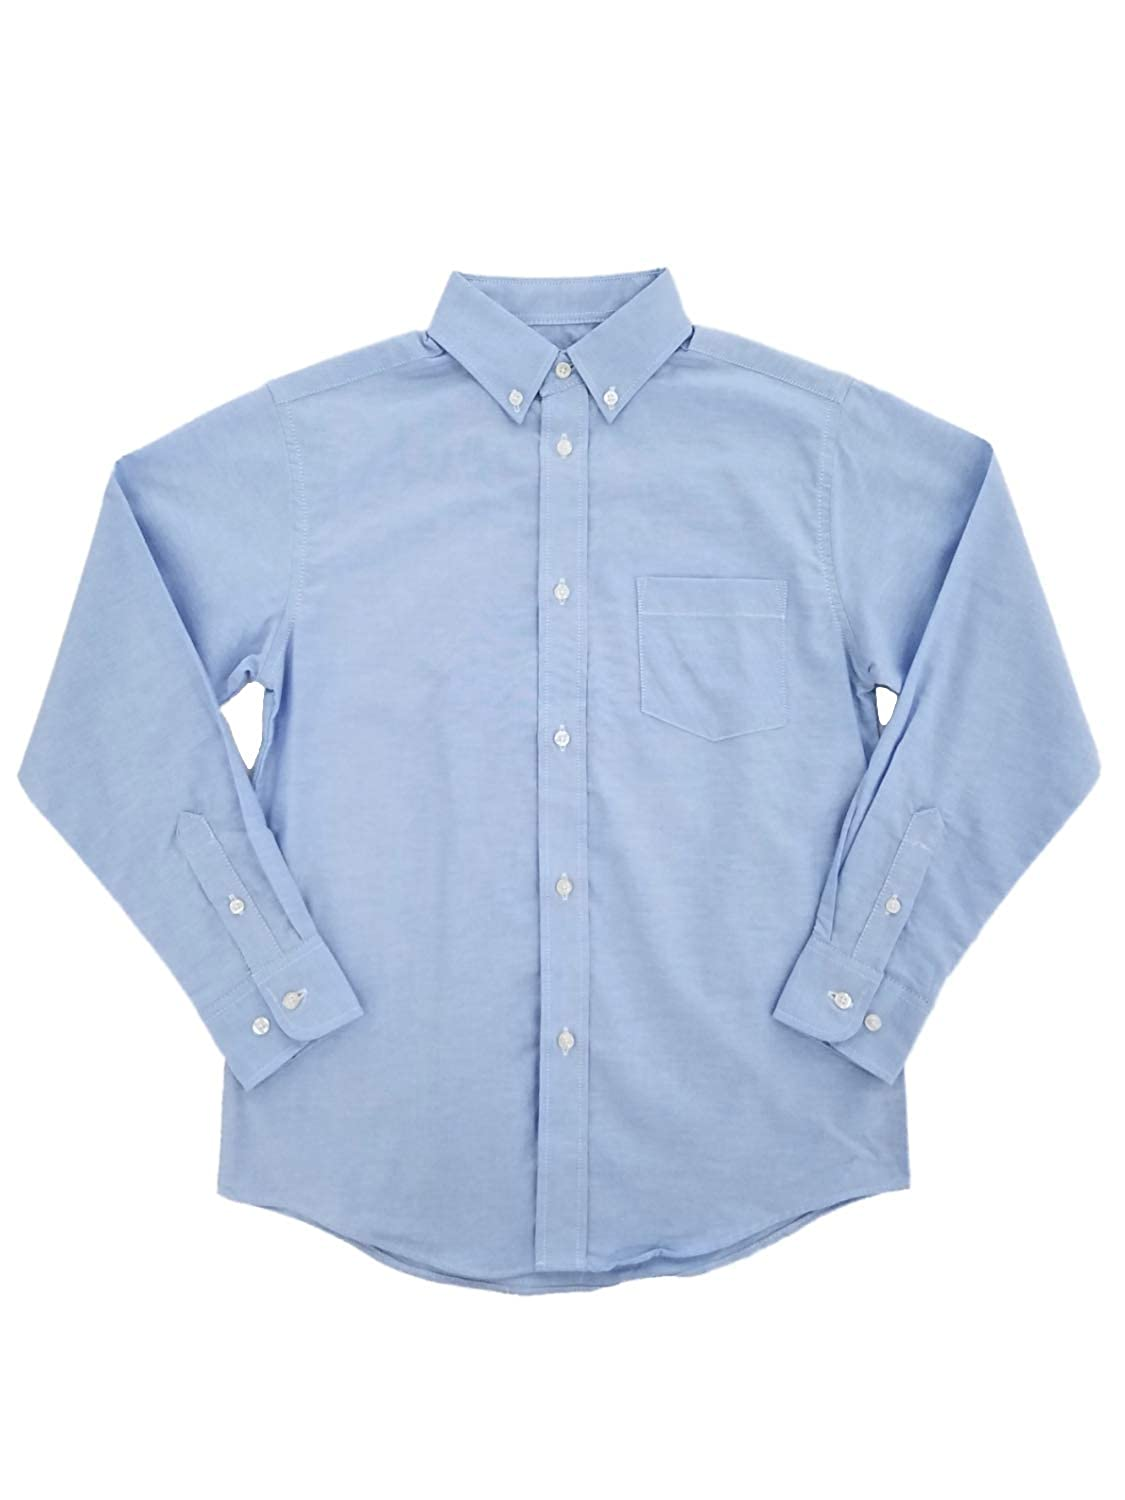 Chaps Boys Solid Blue Oxford Button-Down Long Sleeve Dress Shirt